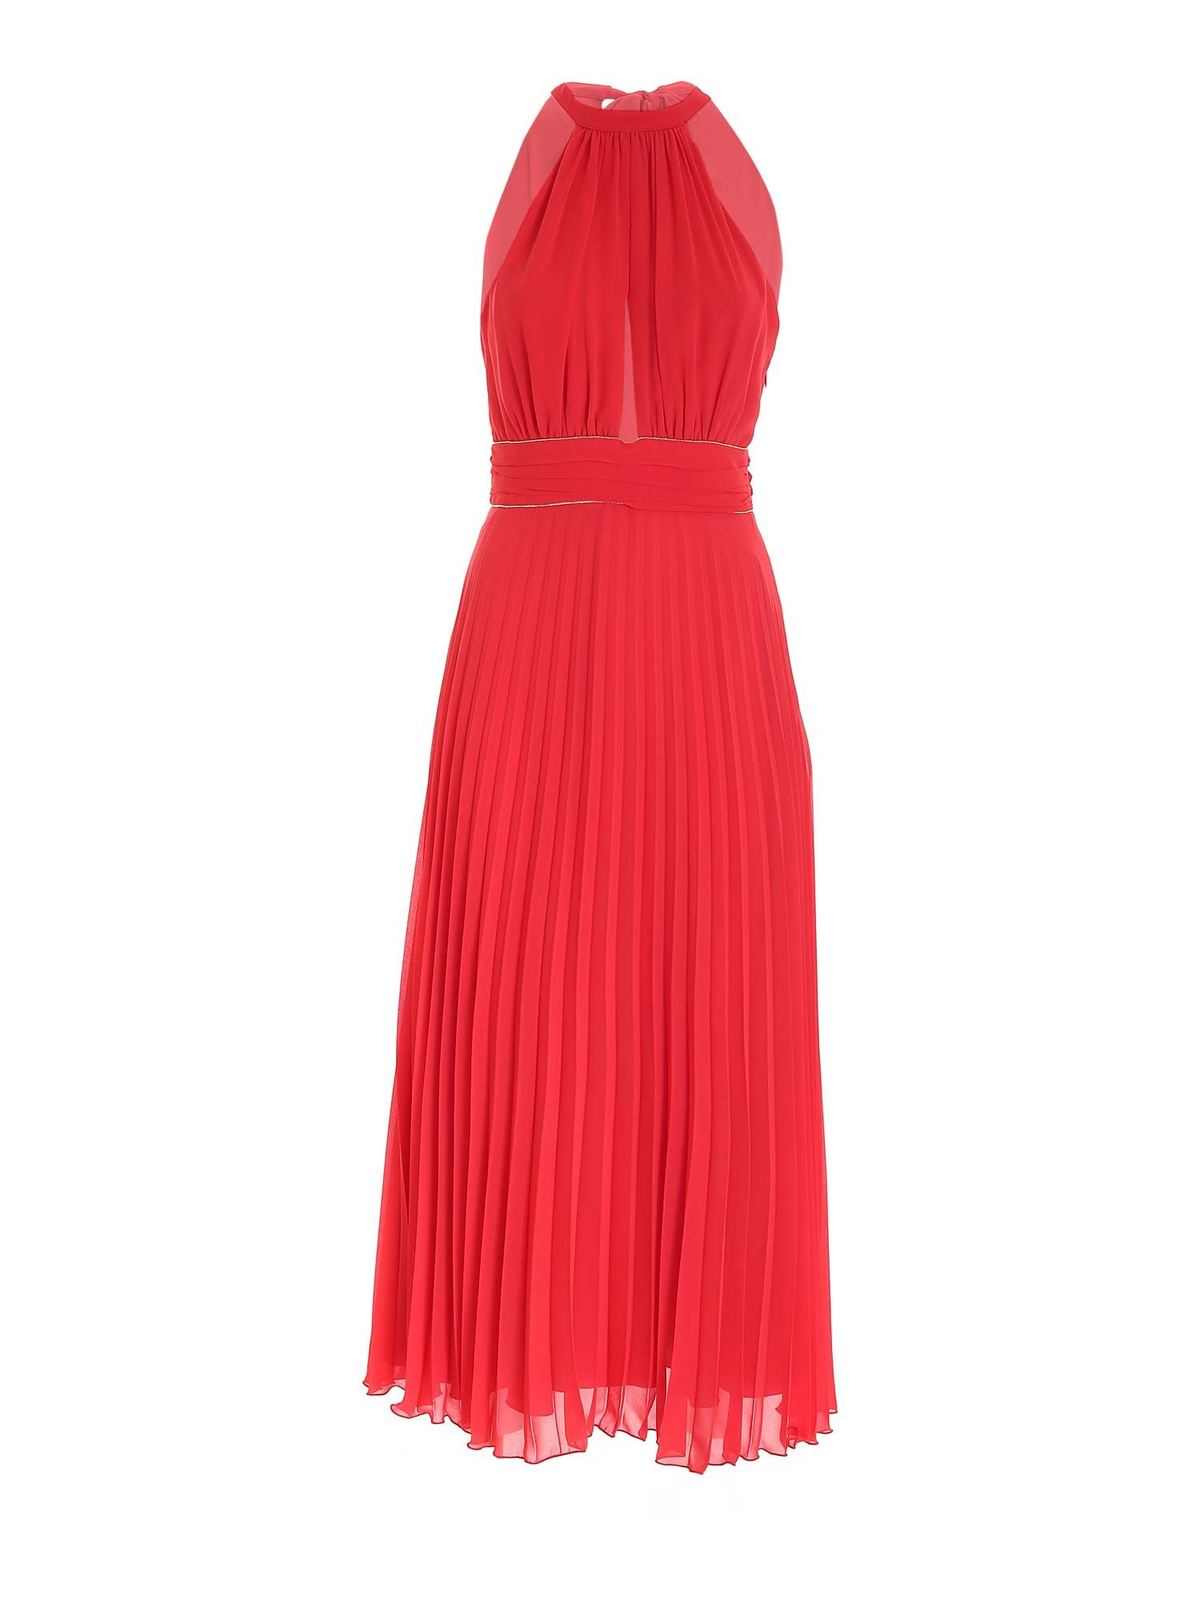 Blumarine PLEATED DRESS IN CORAL RED